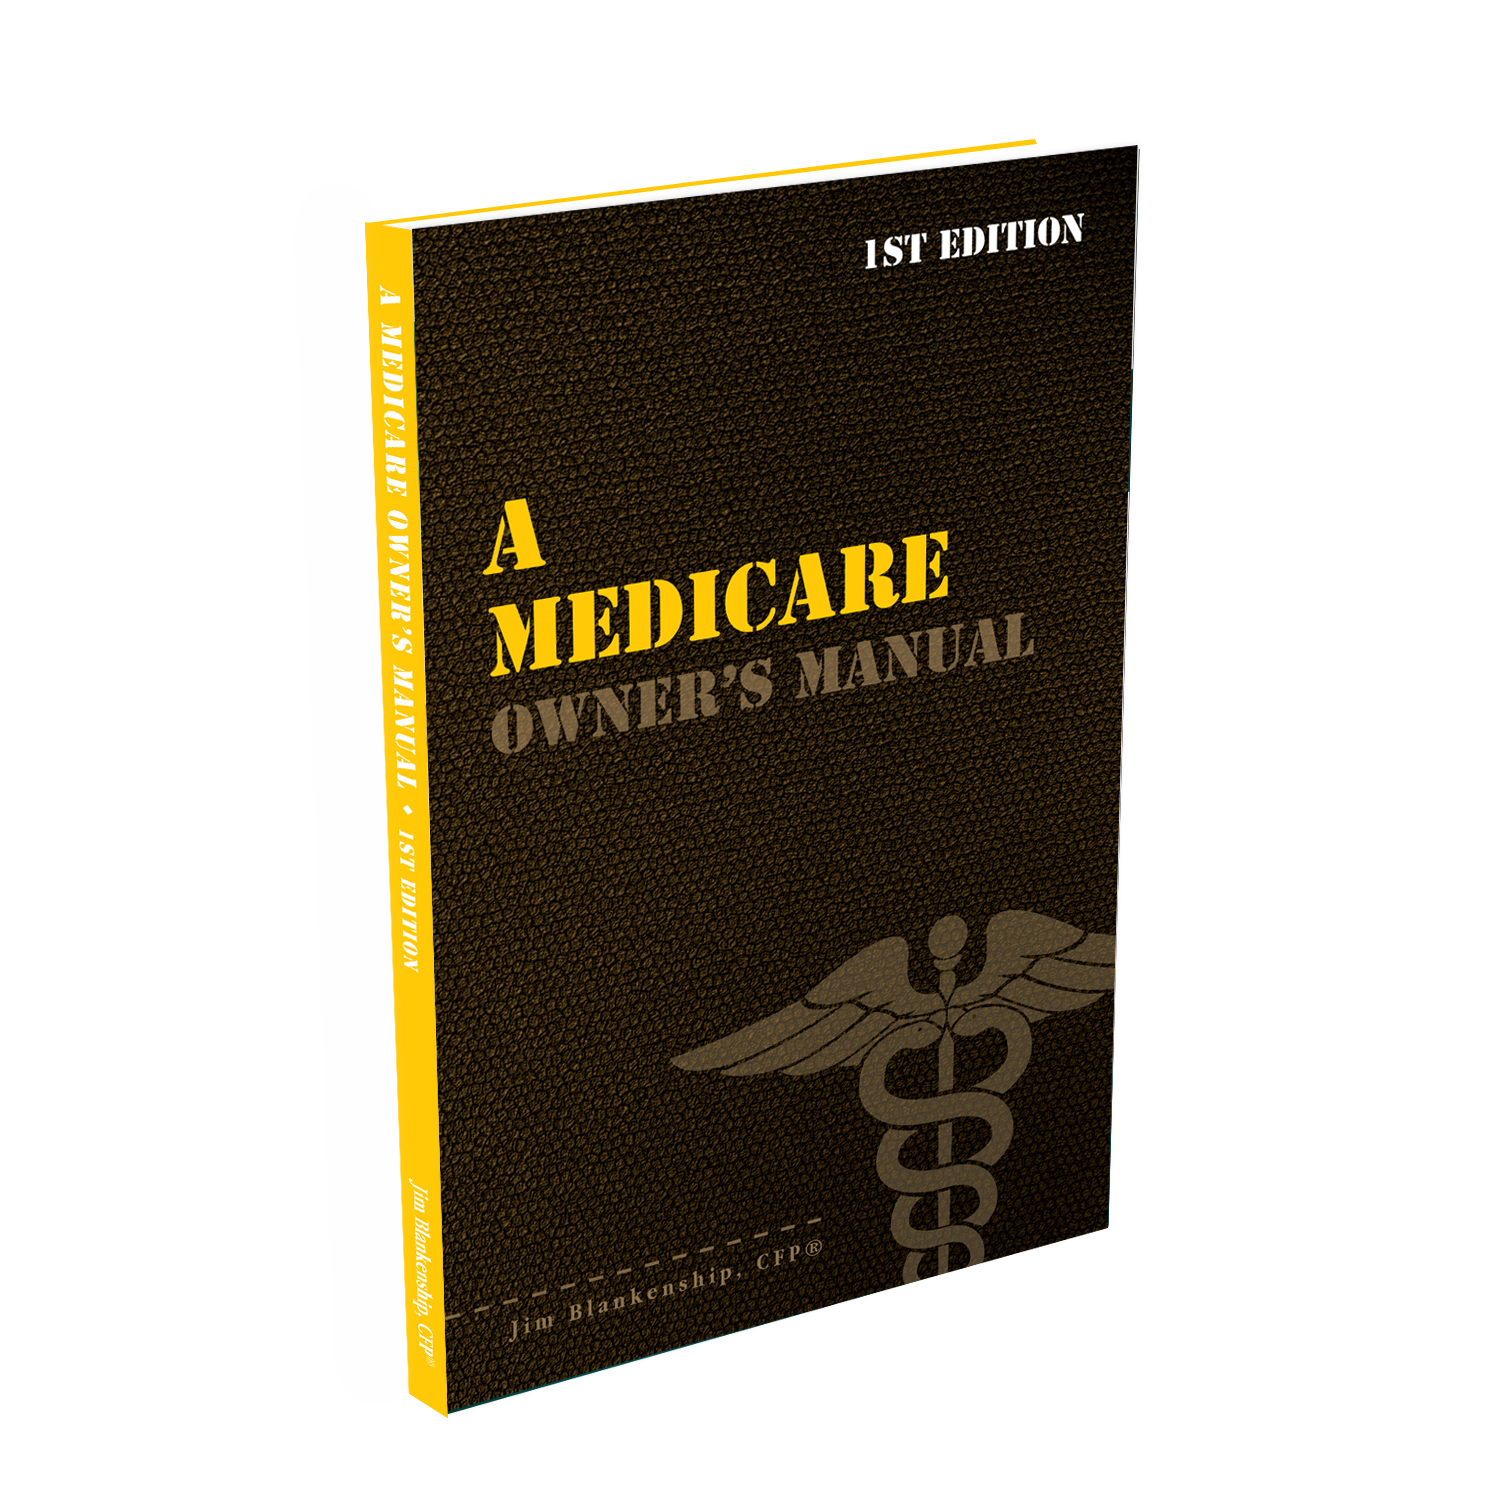 A Medicare Owner's Manual